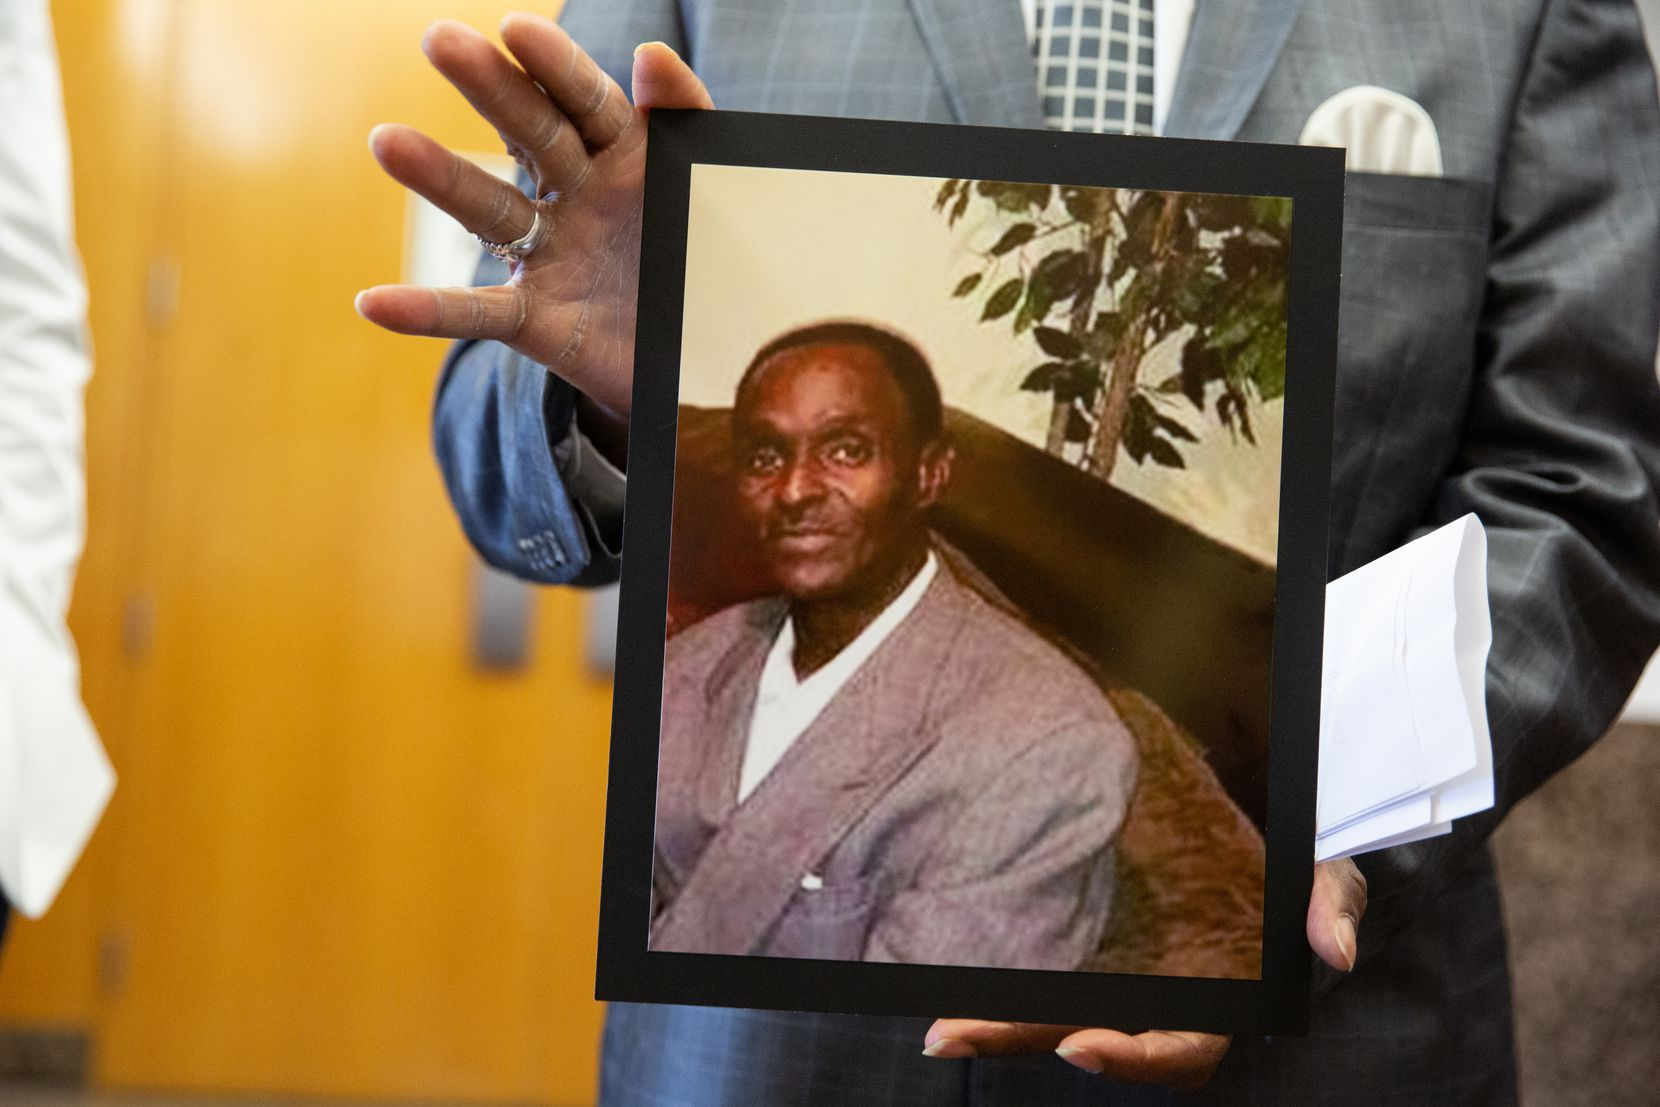 Kenneth R. Harris Sr. holds a photo of his 59-year-old brother Gerald Wayne Harris, who was killed by Reginal Knox, at Frank Crowley Courthouse on July 26, 2021. Knox pleaded guilty to murder in exchange for a 12-year sentence.